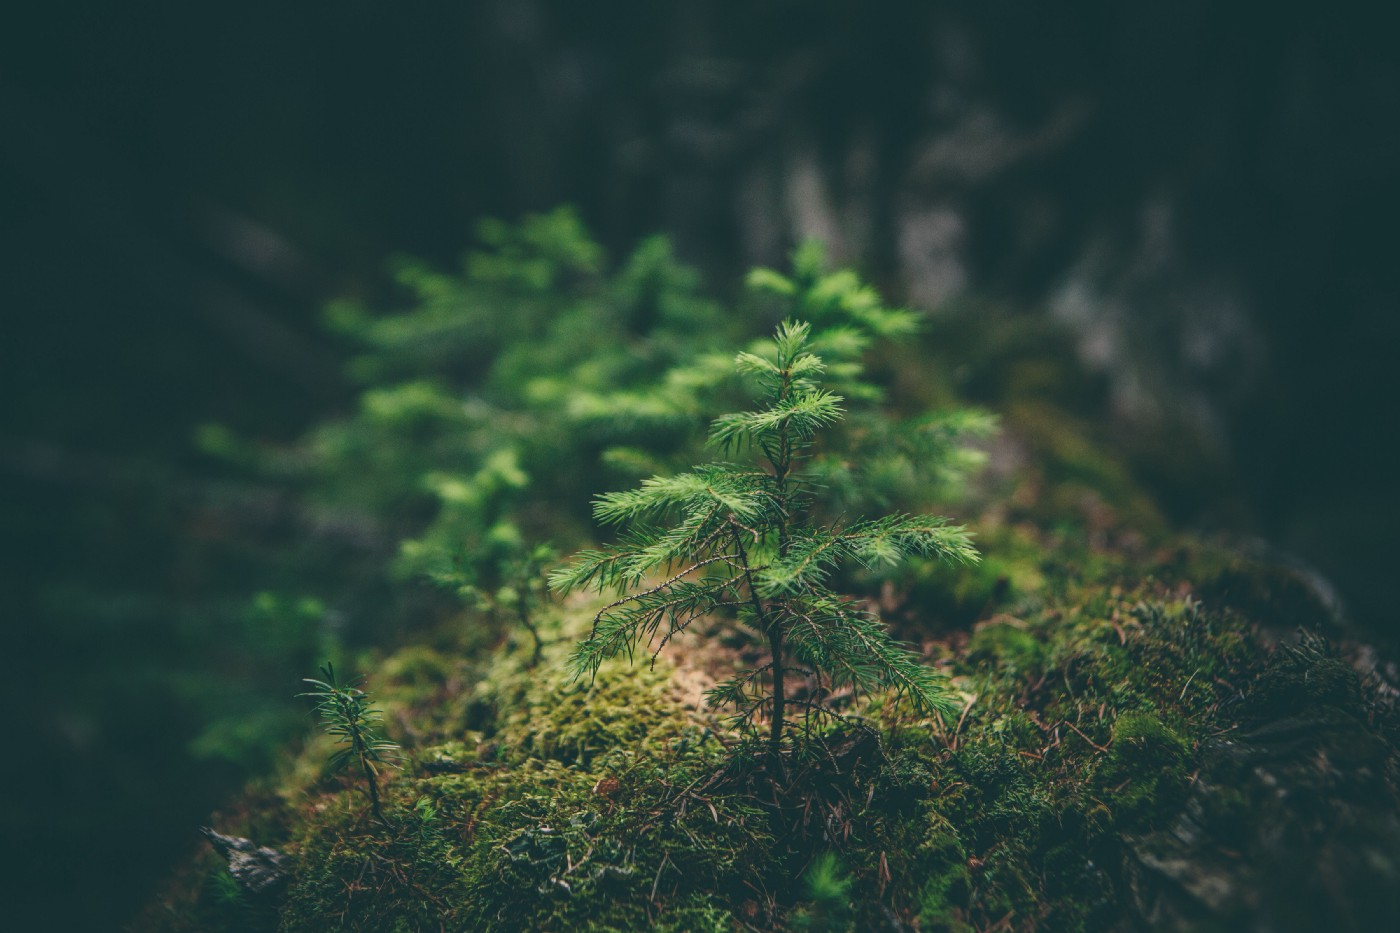 small sapling in mossy forest